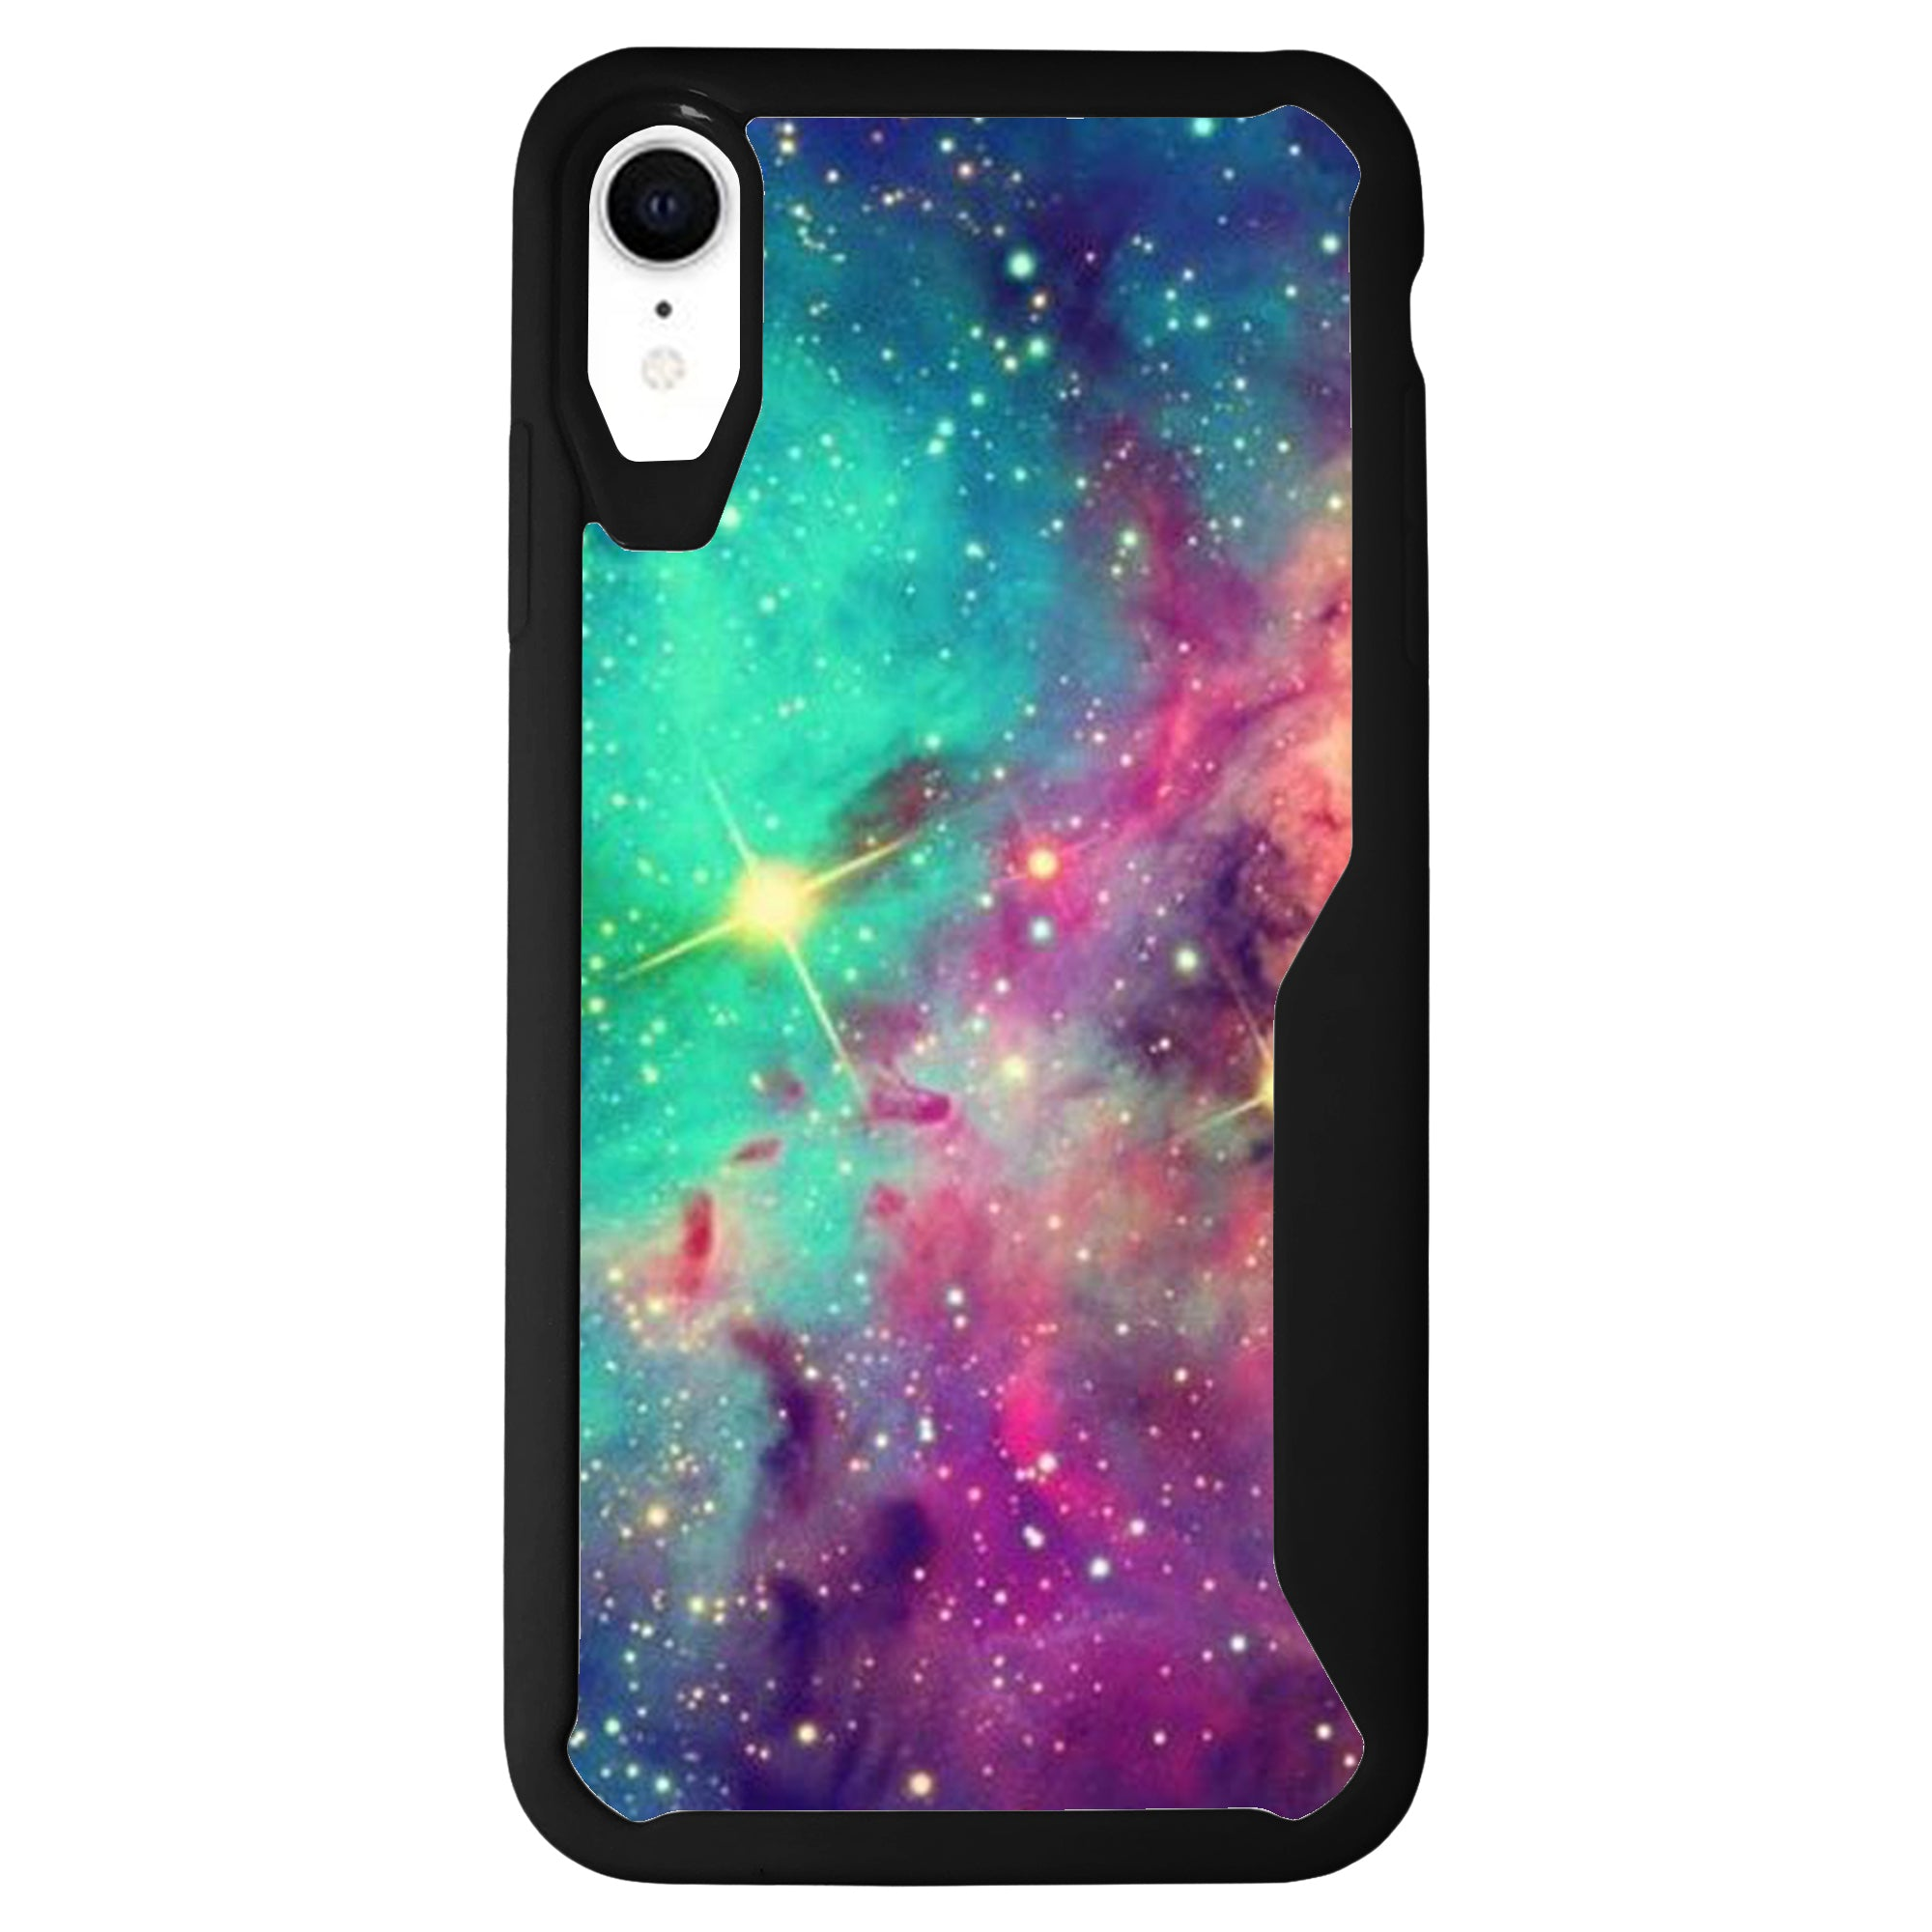 for apple iphone xr 2018 black edge tpu case w designs. Black Bedroom Furniture Sets. Home Design Ideas